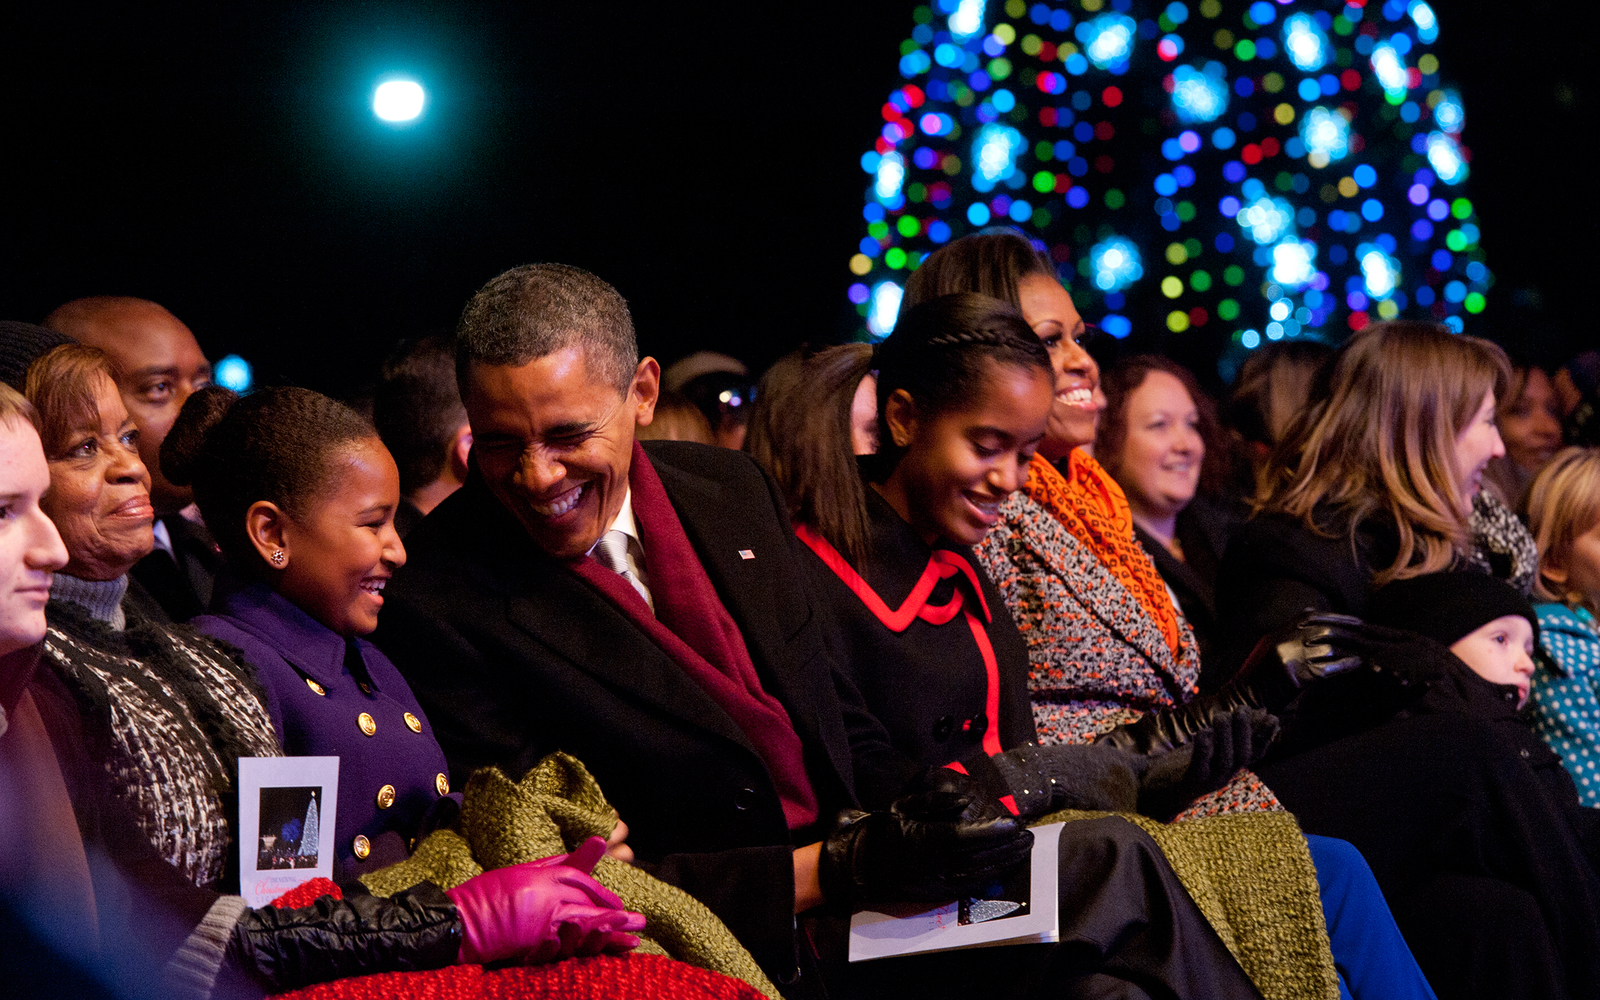 ... White House Christmas Tree Lighting. DC Tree Lighting  sc 1 st  Travel + Leisure & How to Get Tickets to the White House Tree Lighting Ceremony ... azcodes.com